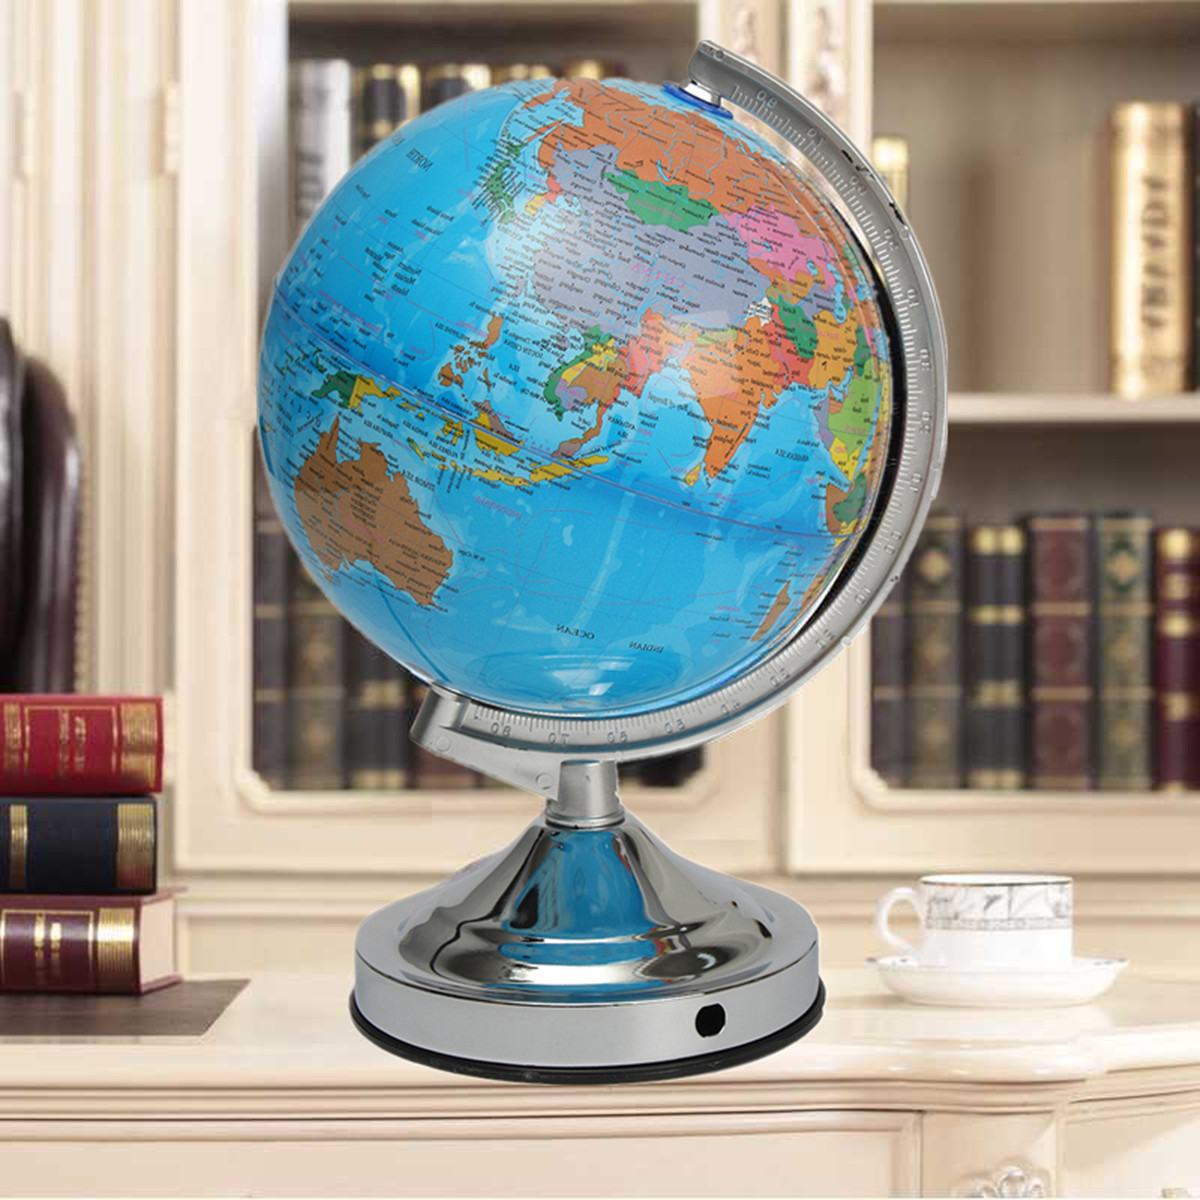 Illuminated Blue Ocean World Earth Globe Geography Map Rotating With Night Light Desktop Decor for Home School Office EU Plug new led world map world globe rotating swivel map of earth geography globe figurines ornaments birthday gift home office decor